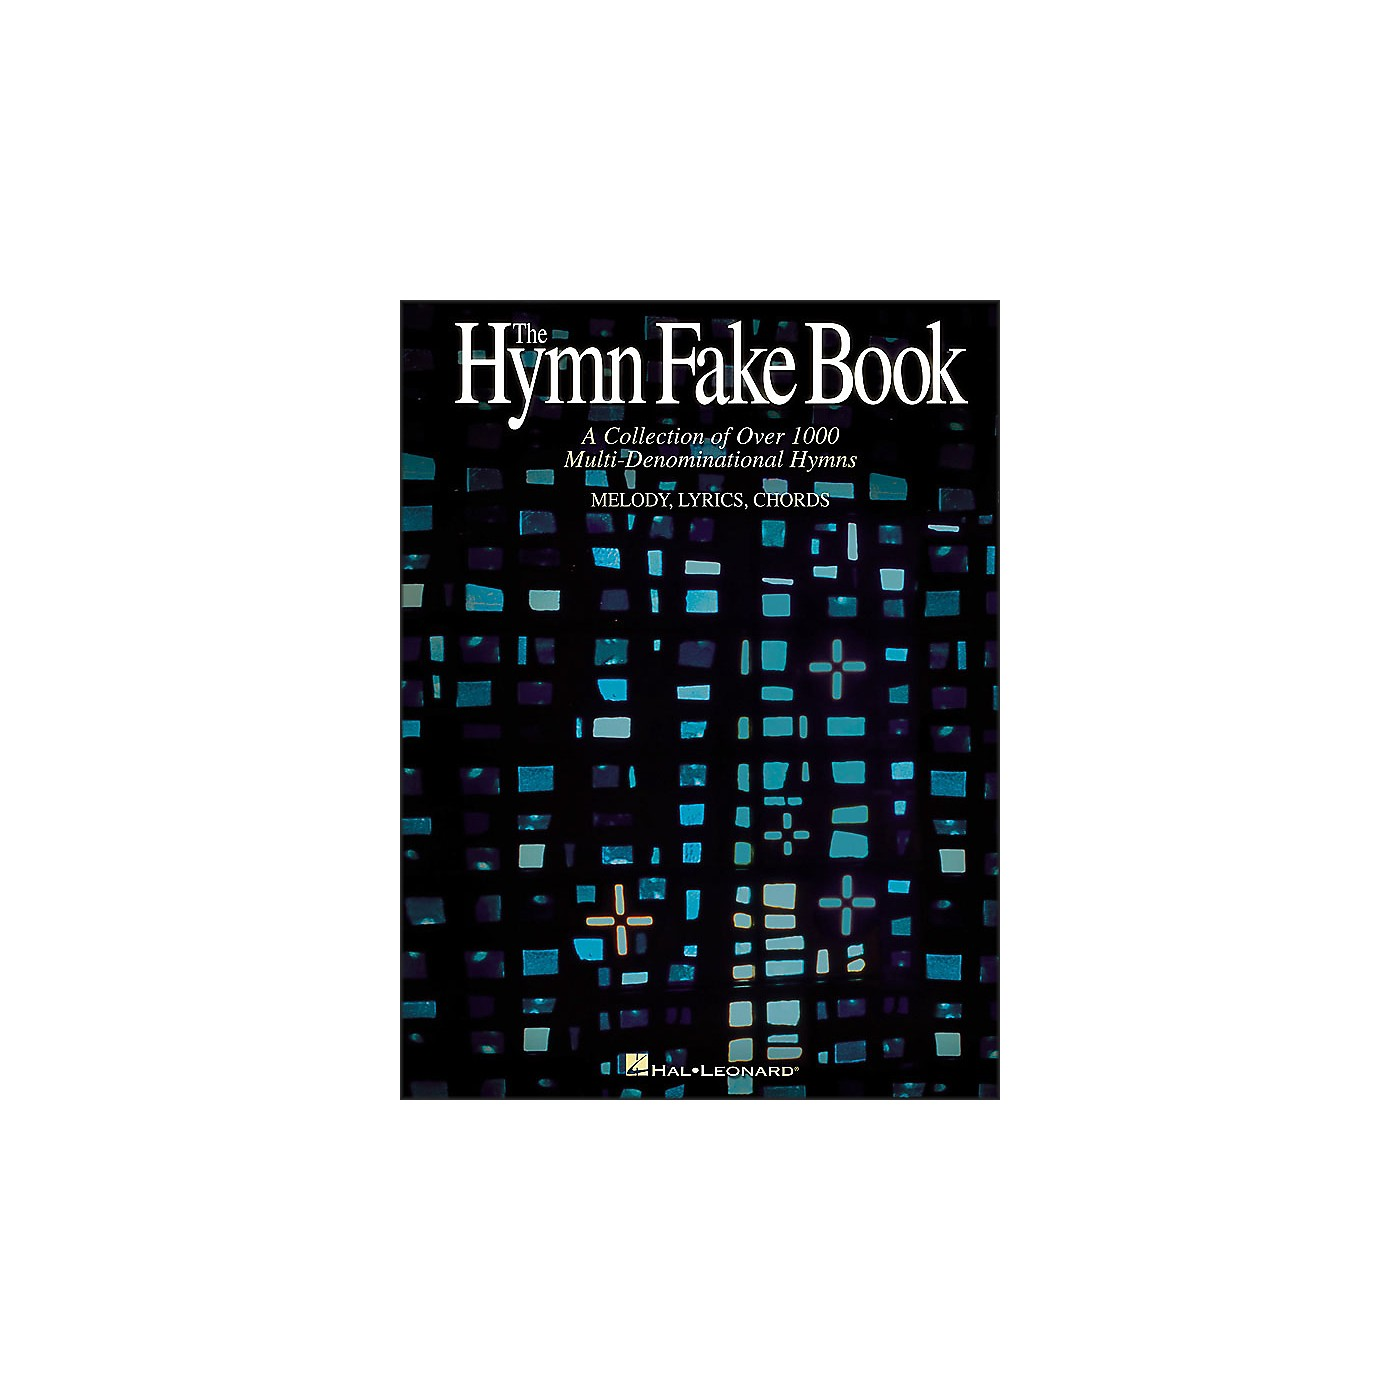 Hal Leonard Hymn Fake Book - Collection Of Over 1000 Multi-Denominational Hymns thumbnail